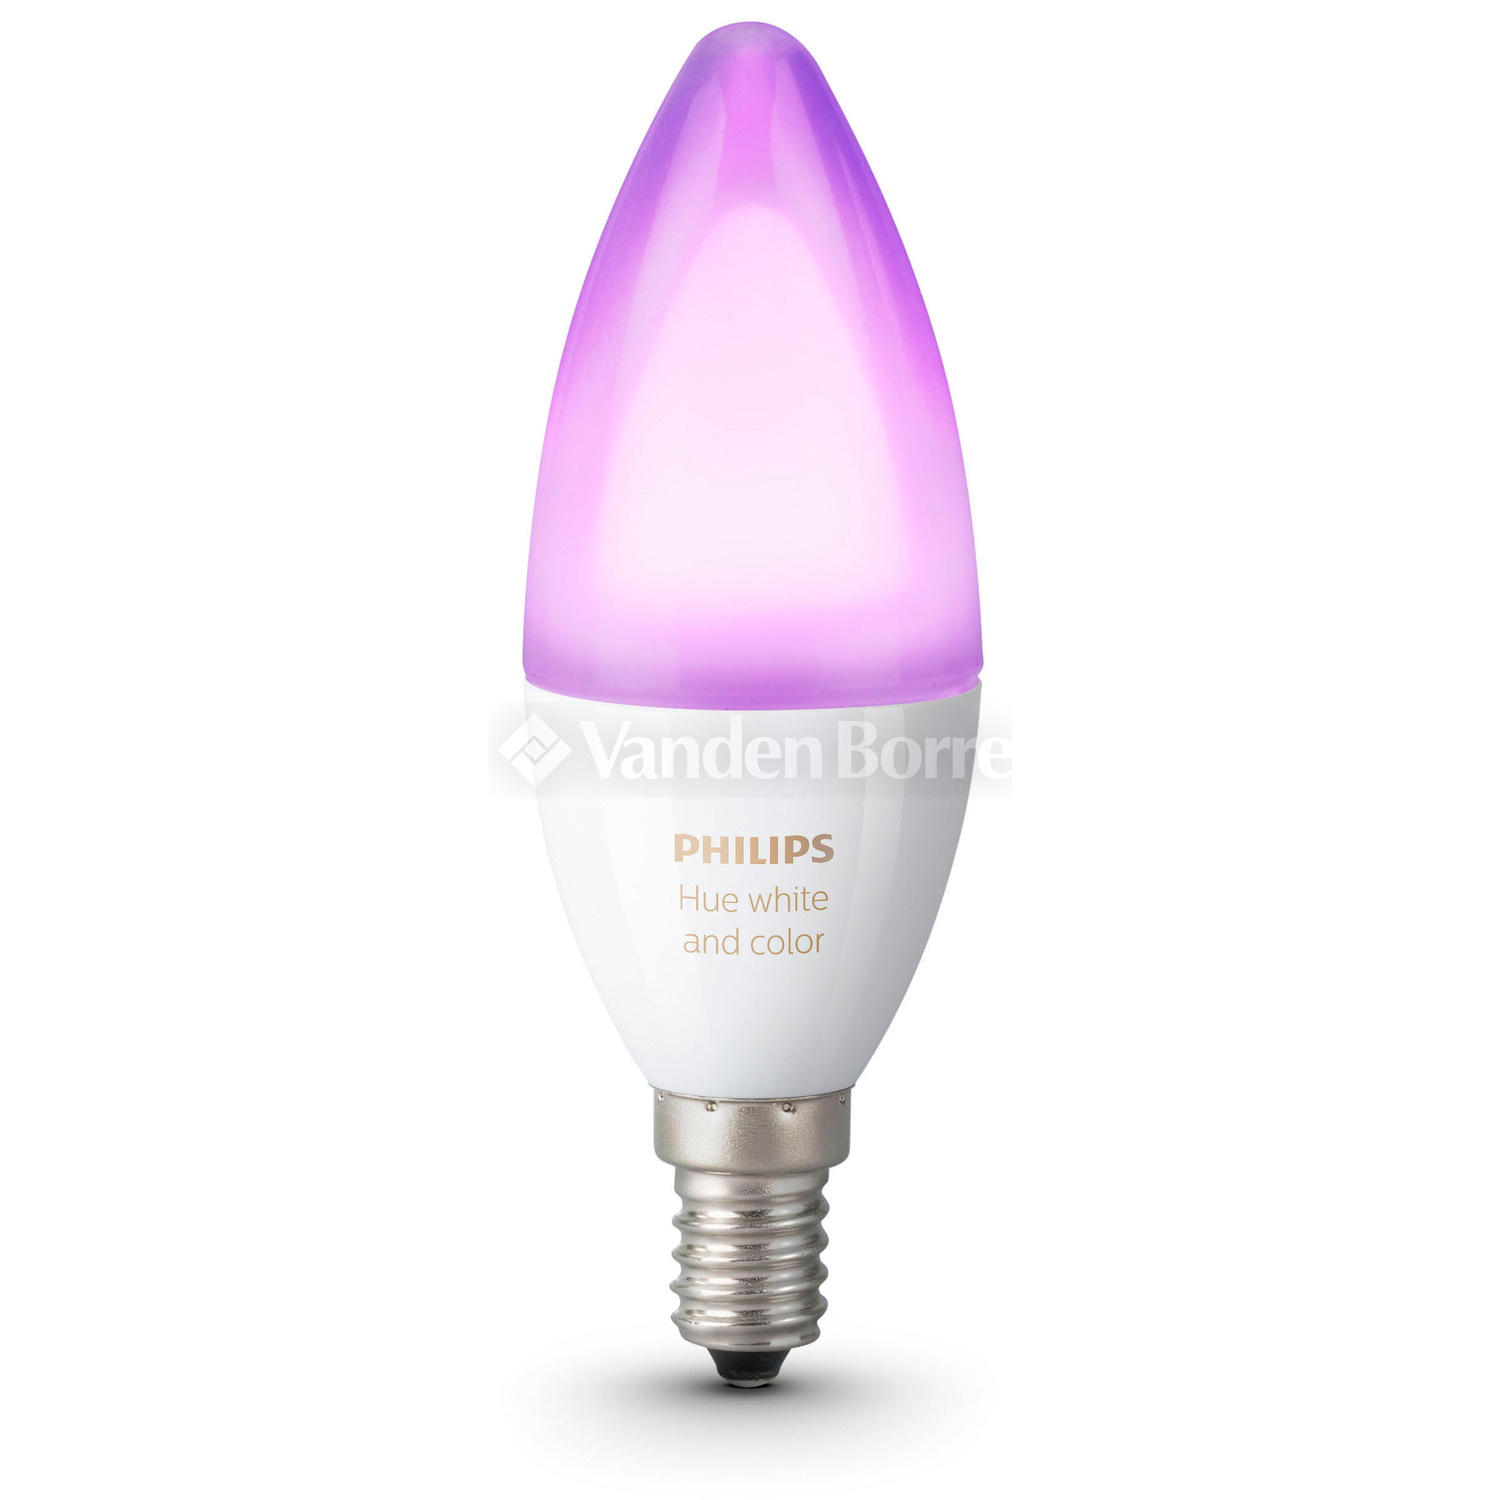 Telefoonnummer Philips Verlichting Philips Hue White And Color Ambiance Candle E14 Bij Vanden Borre